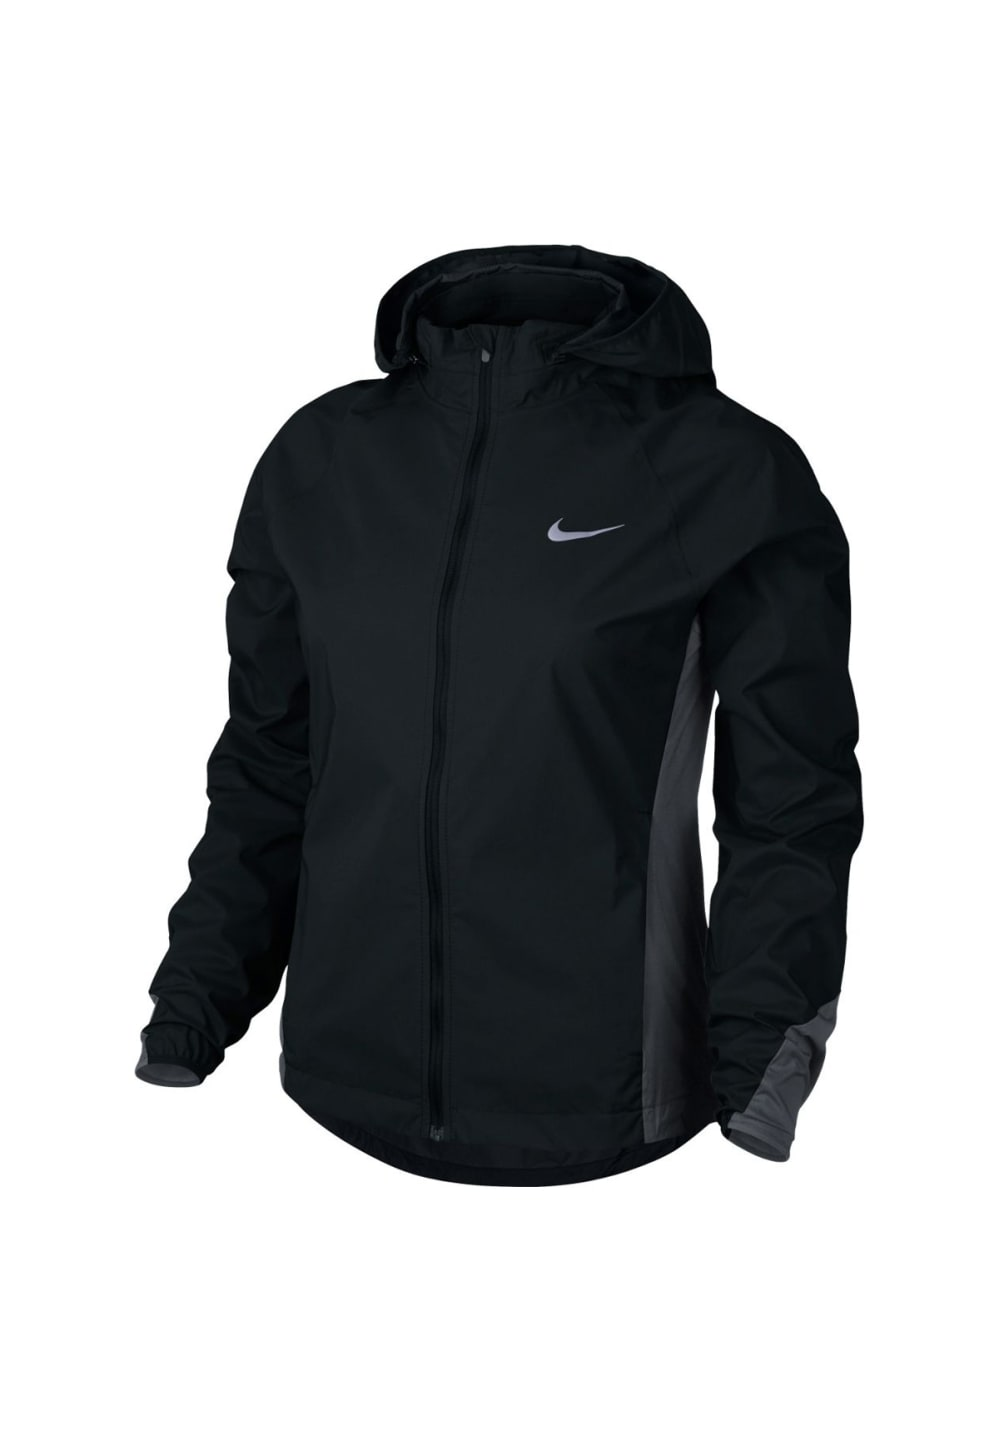 Course 21run Performance Femme Noir Vestes Pour Nike Shield Jacket 8qdIv